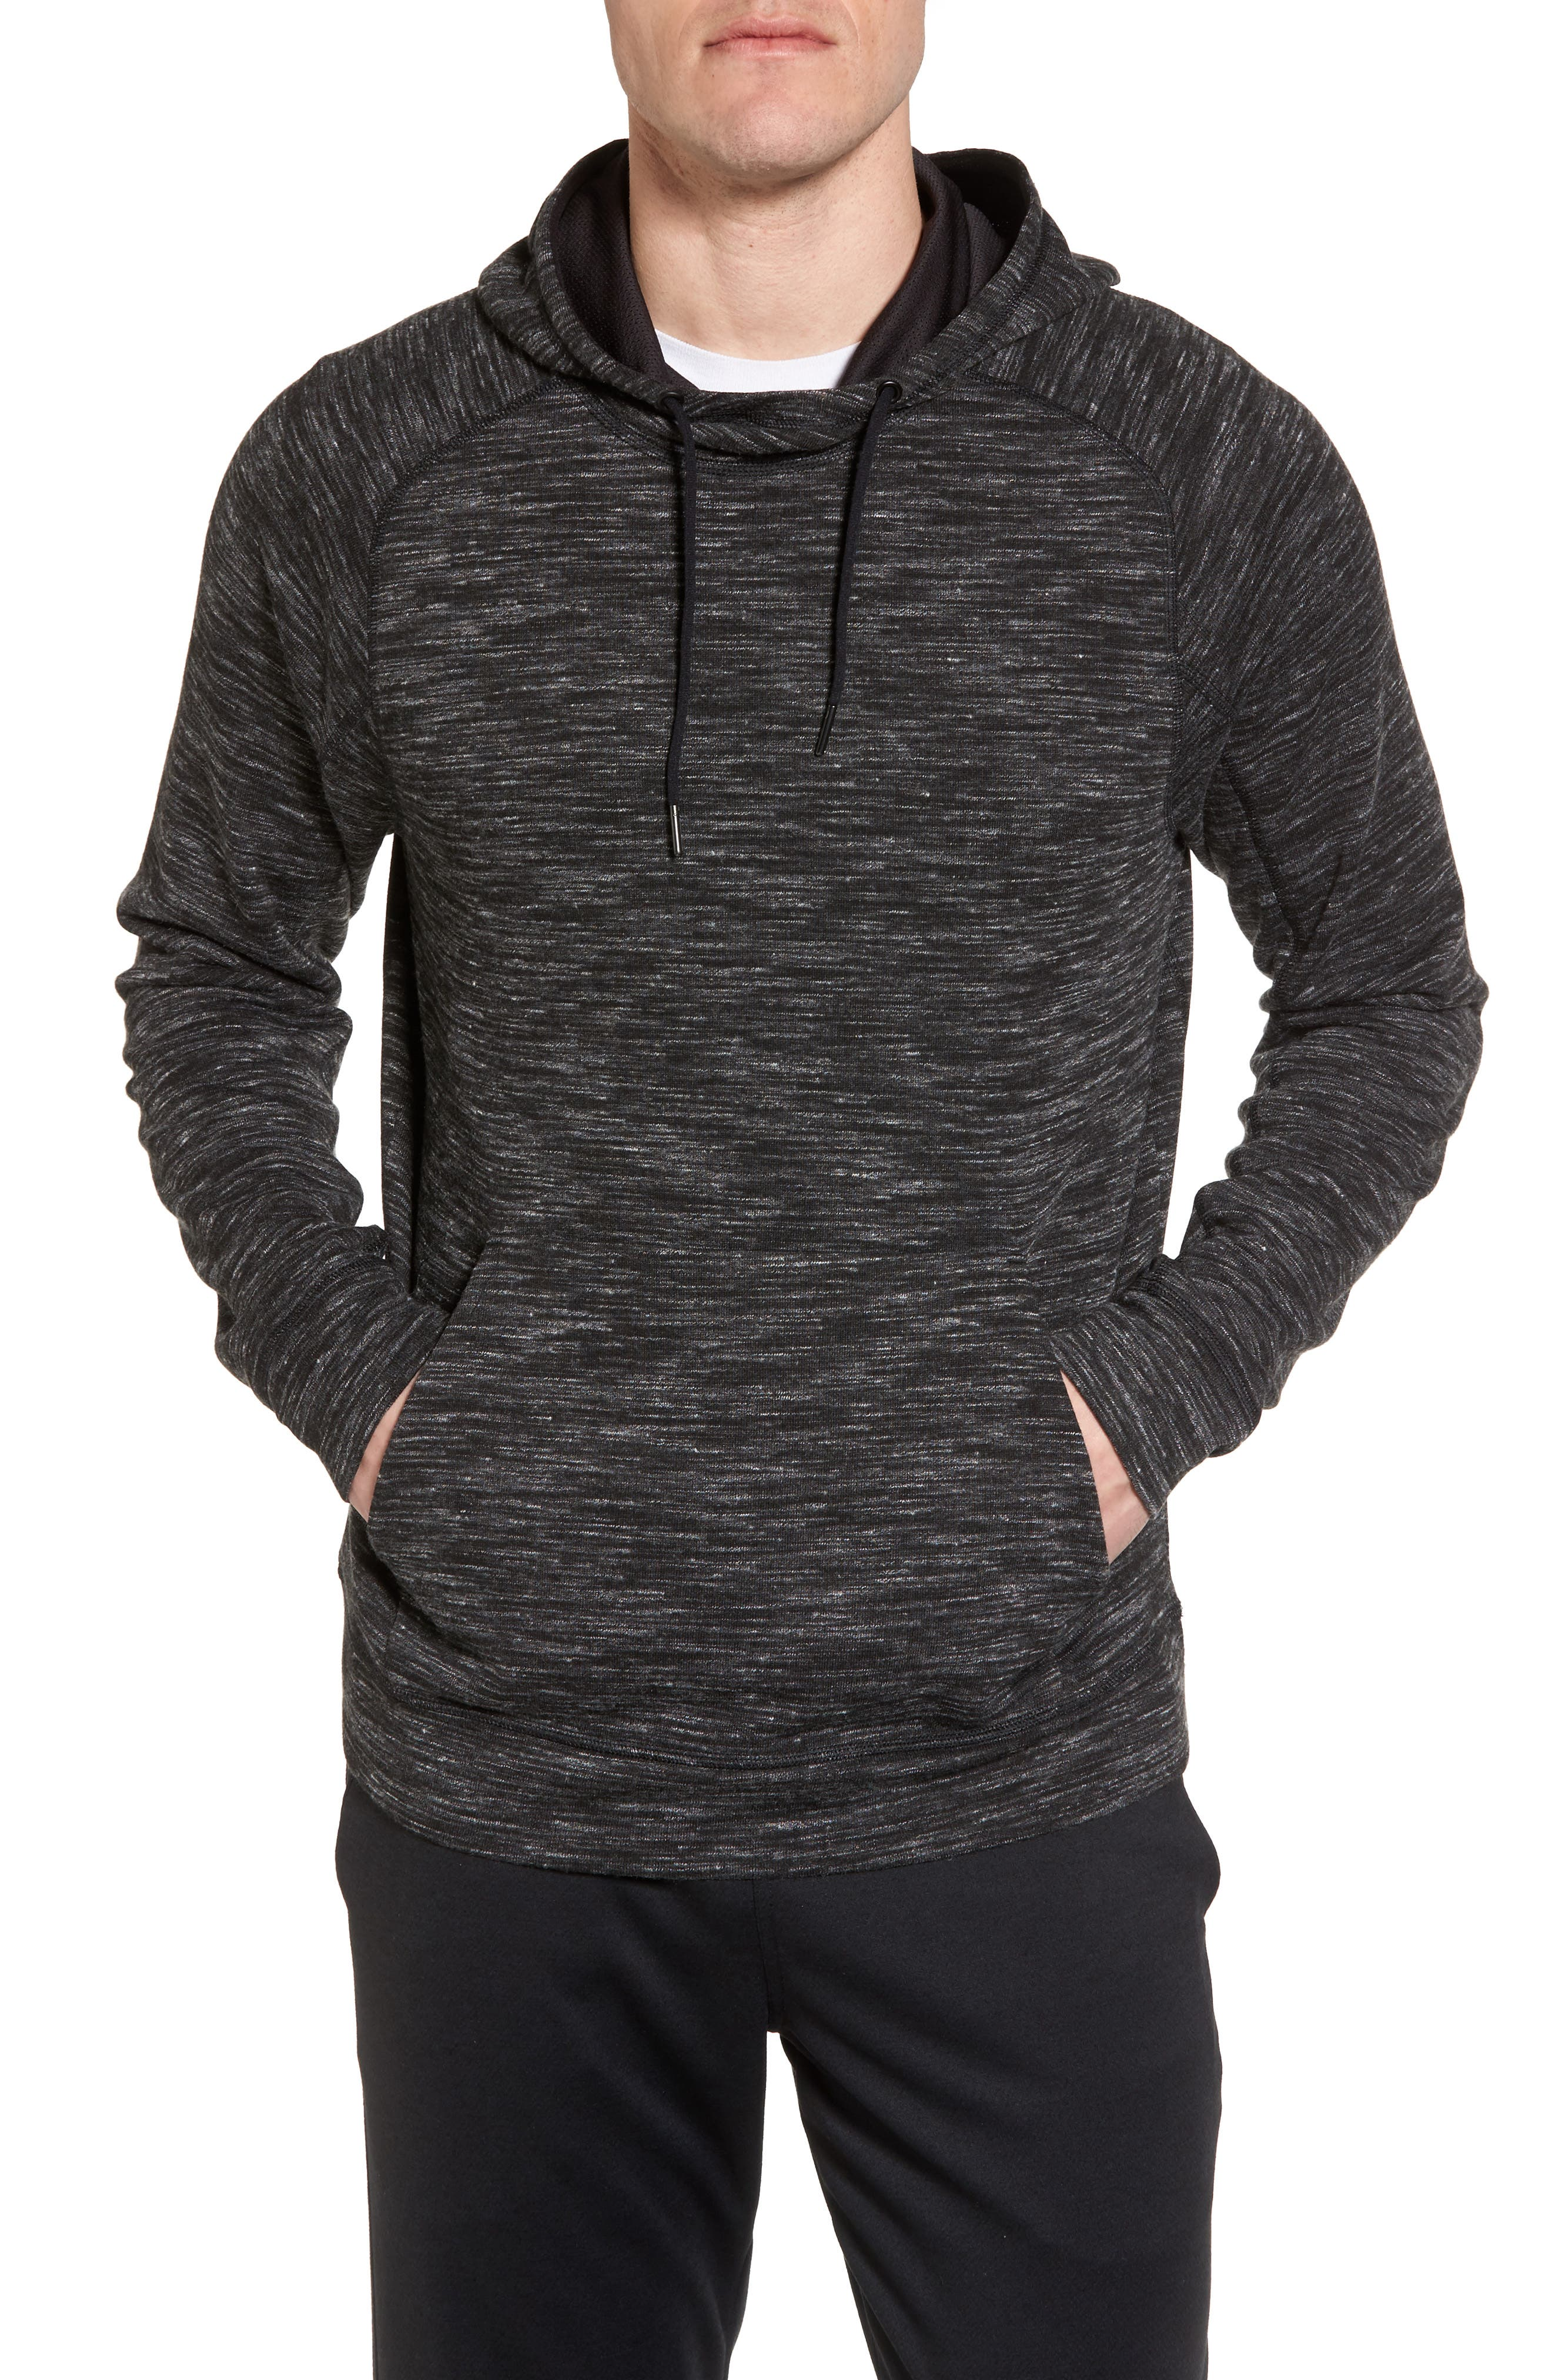 Neptune Hooded Pullover,                         Main,                         color, 001